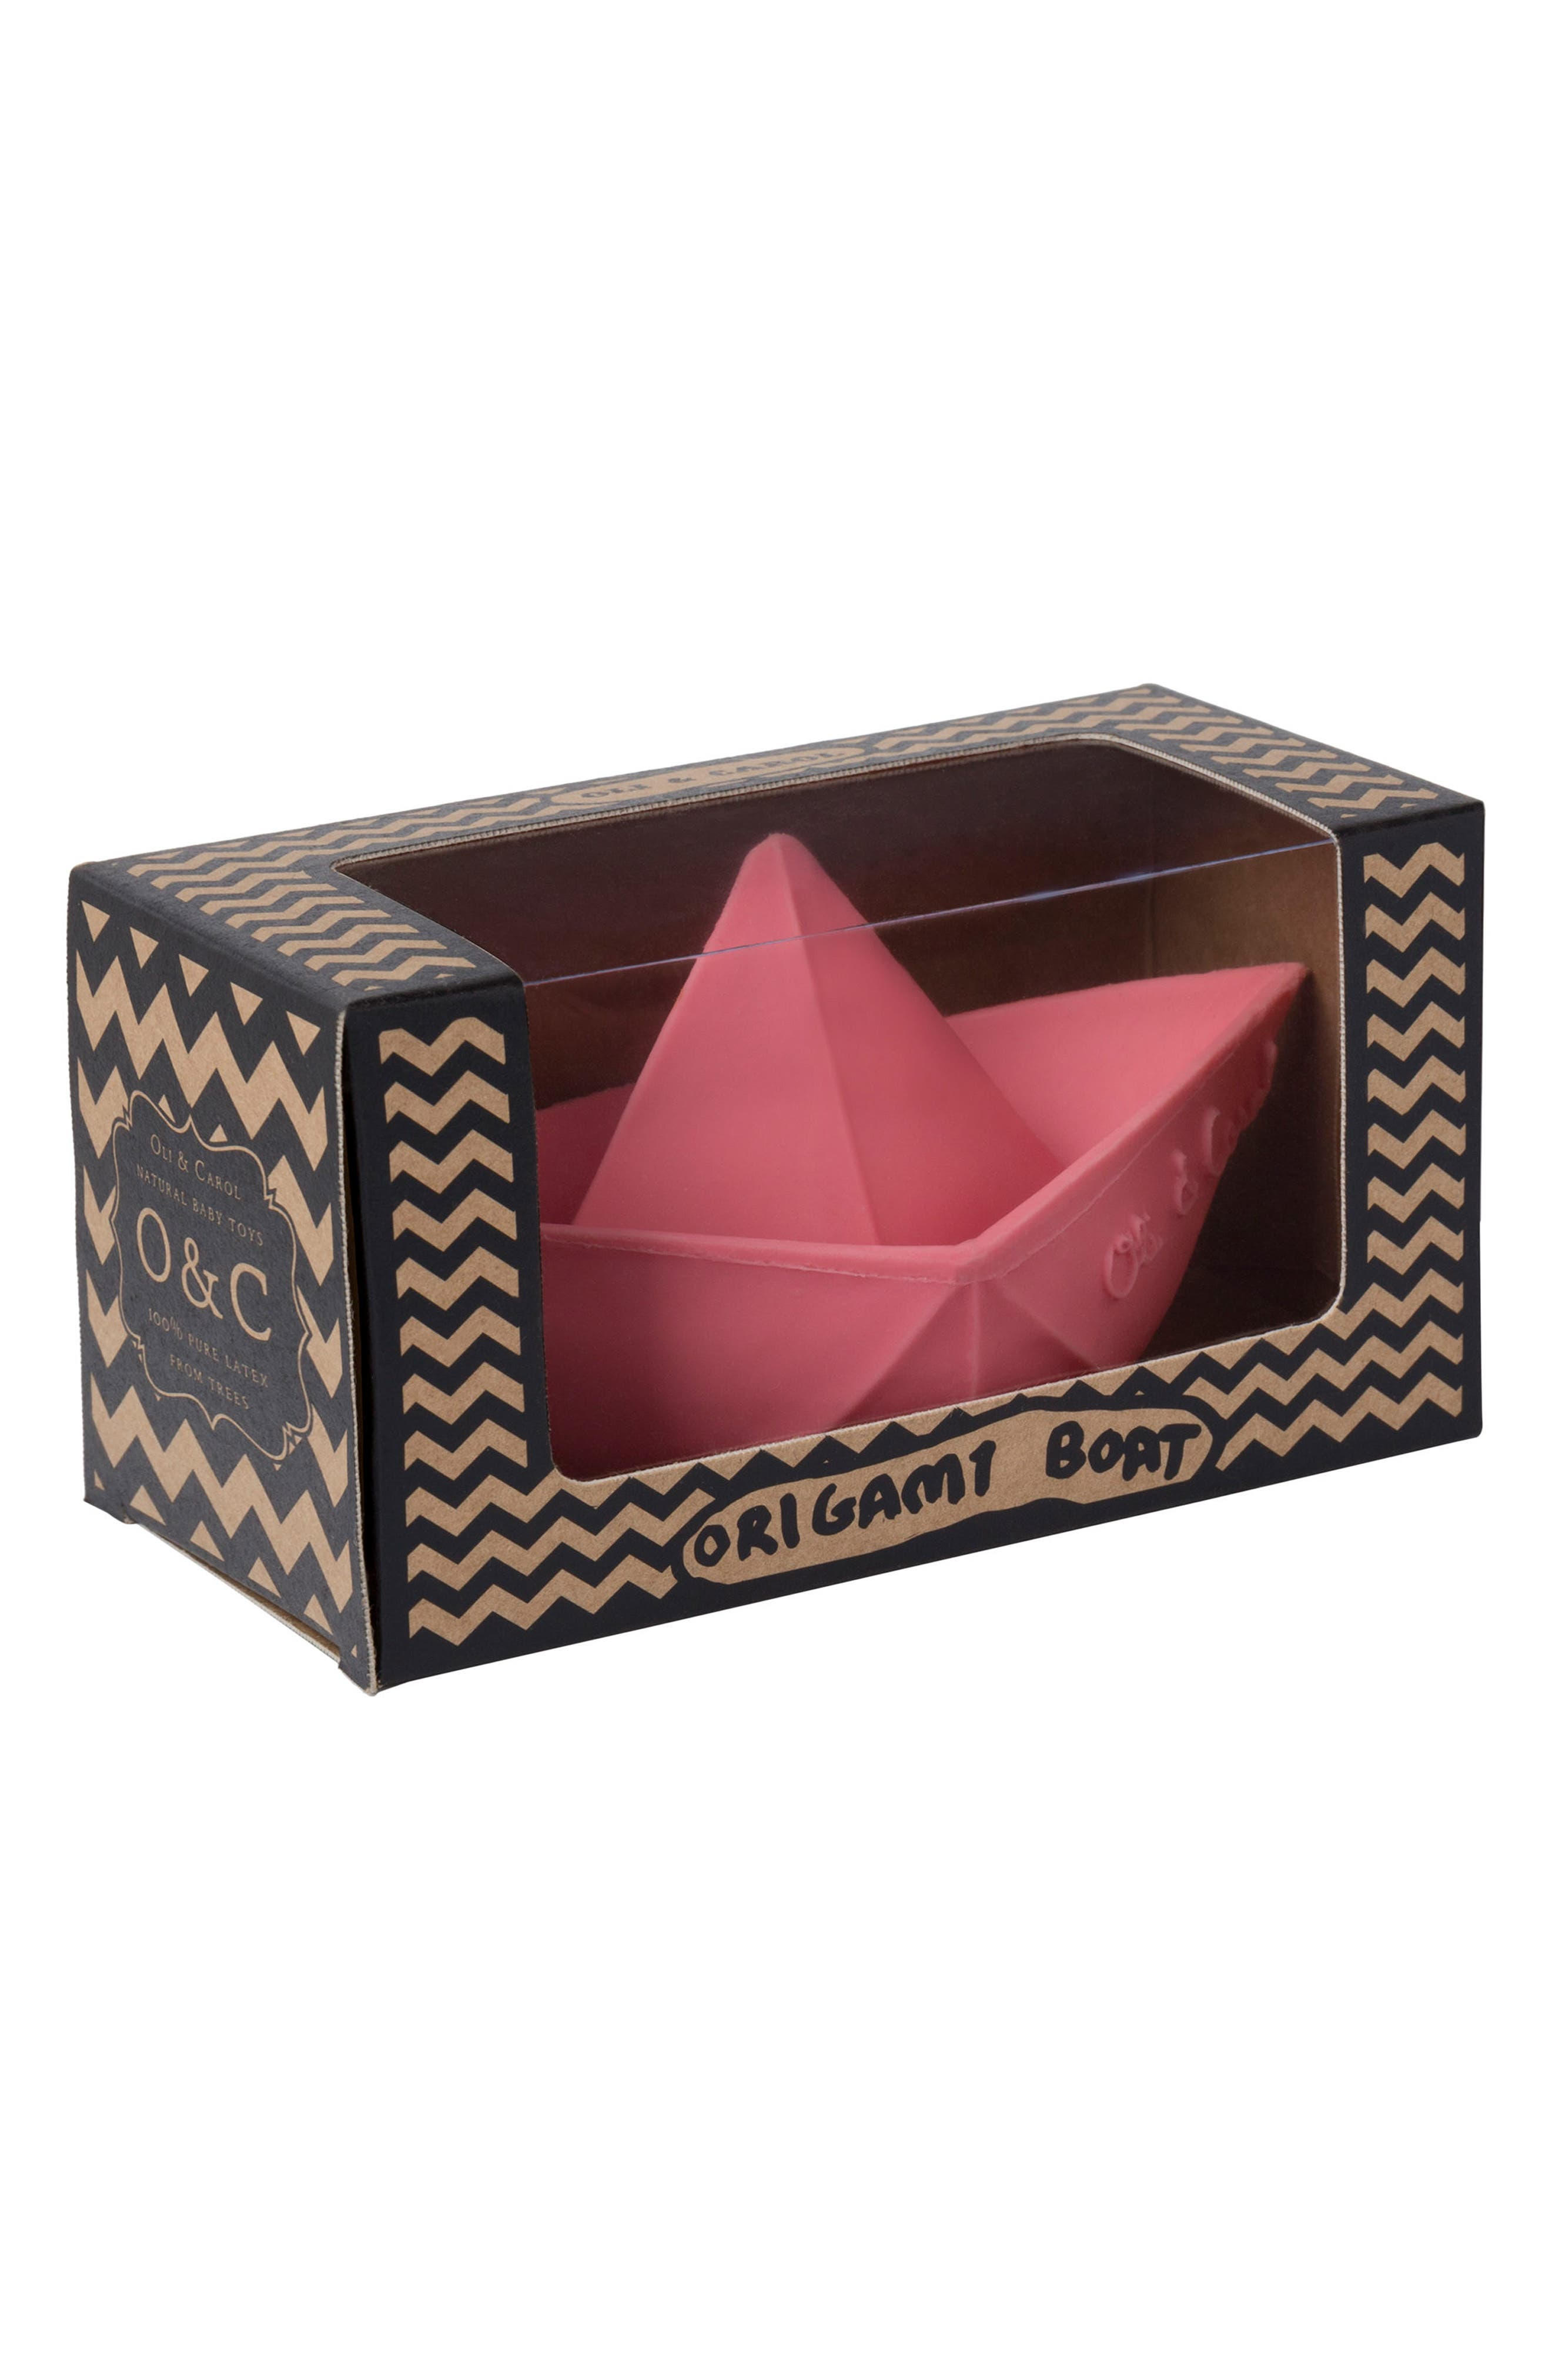 Origami Boat Bath Toy,                             Alternate thumbnail 5, color,                             Pink